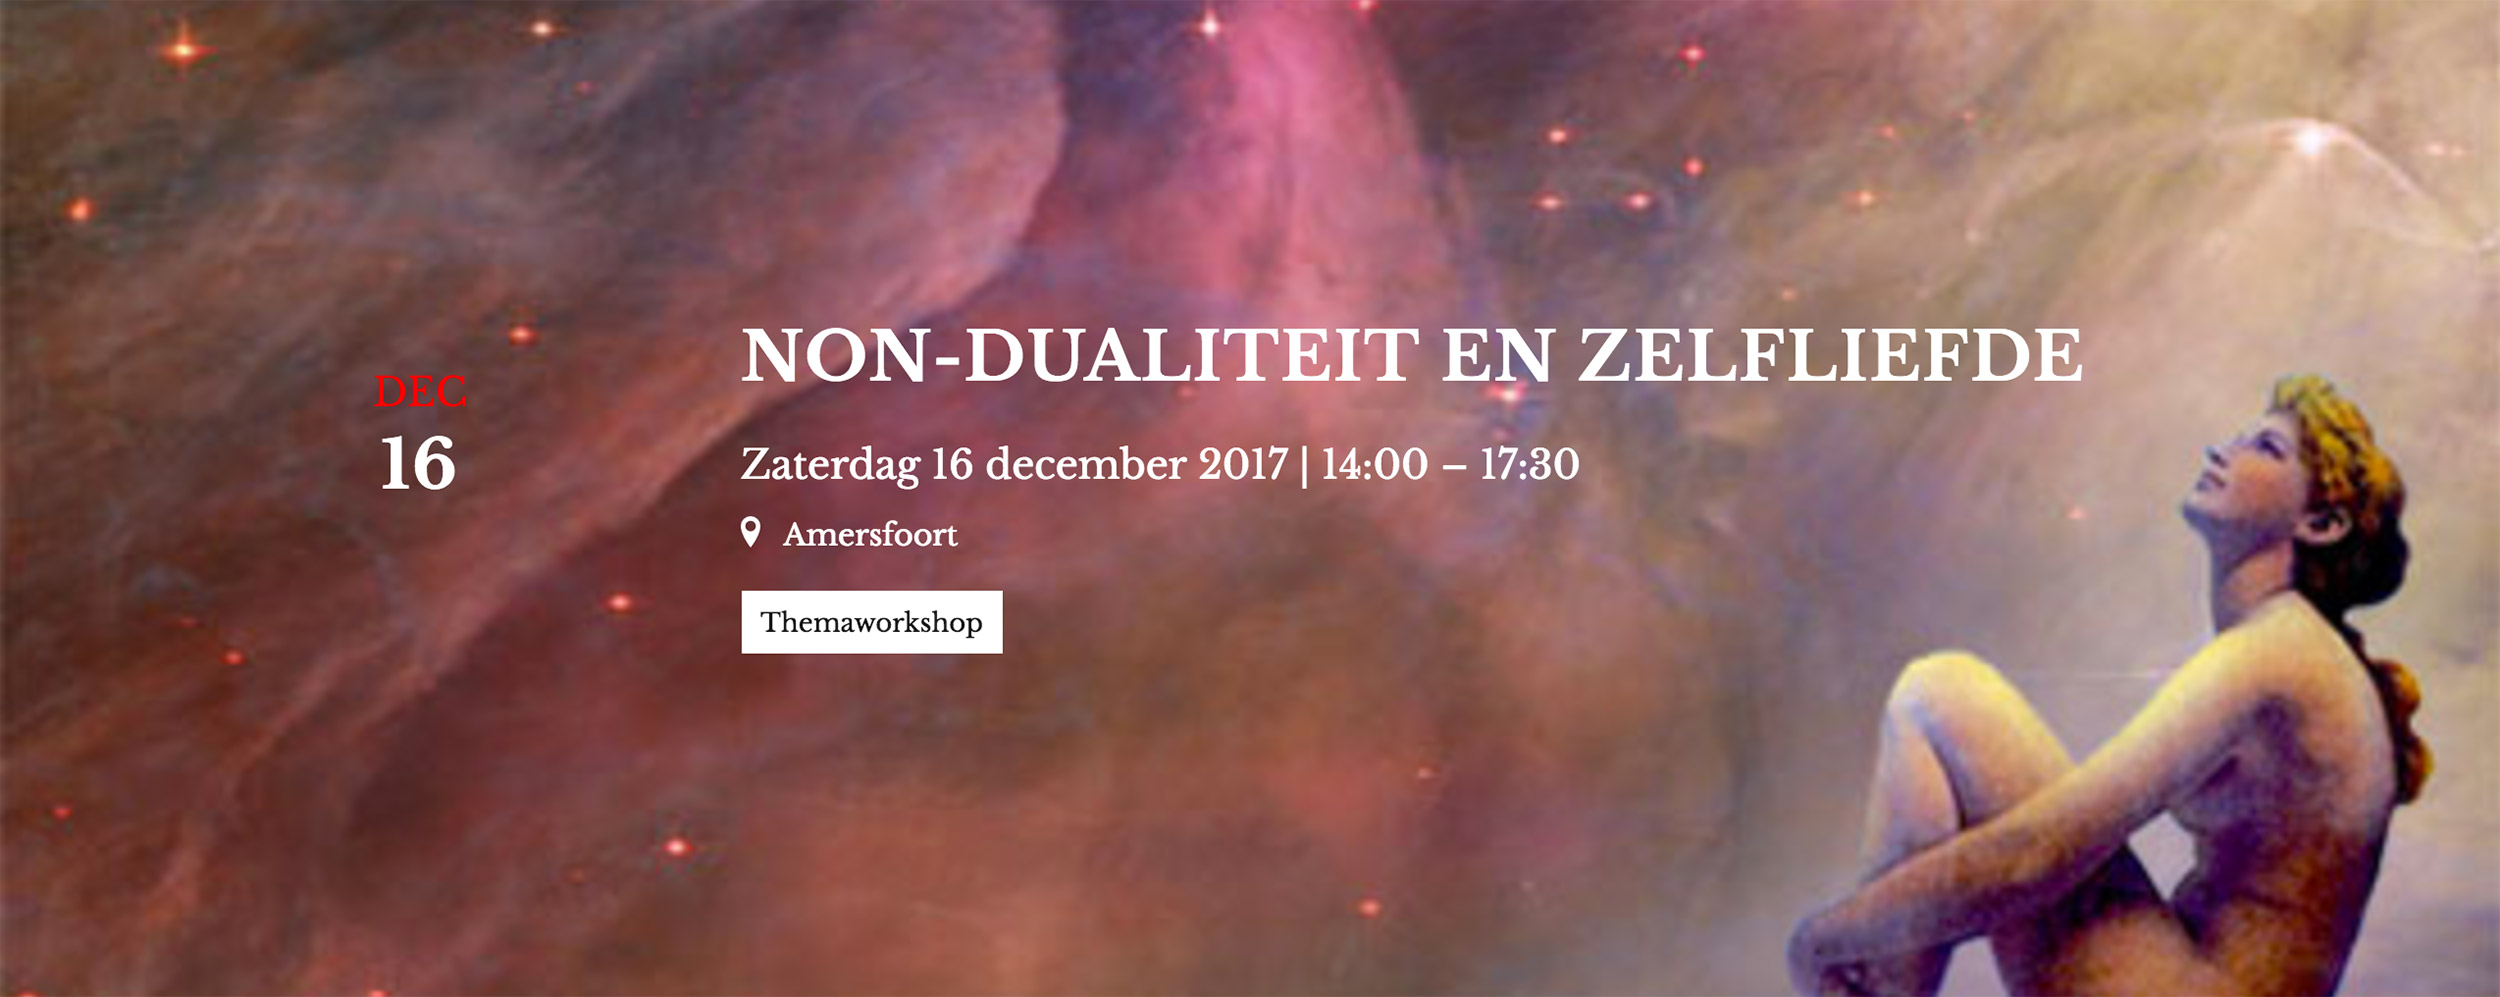 Non dualiteit en zelfliefde even samsara december 2017 workshop